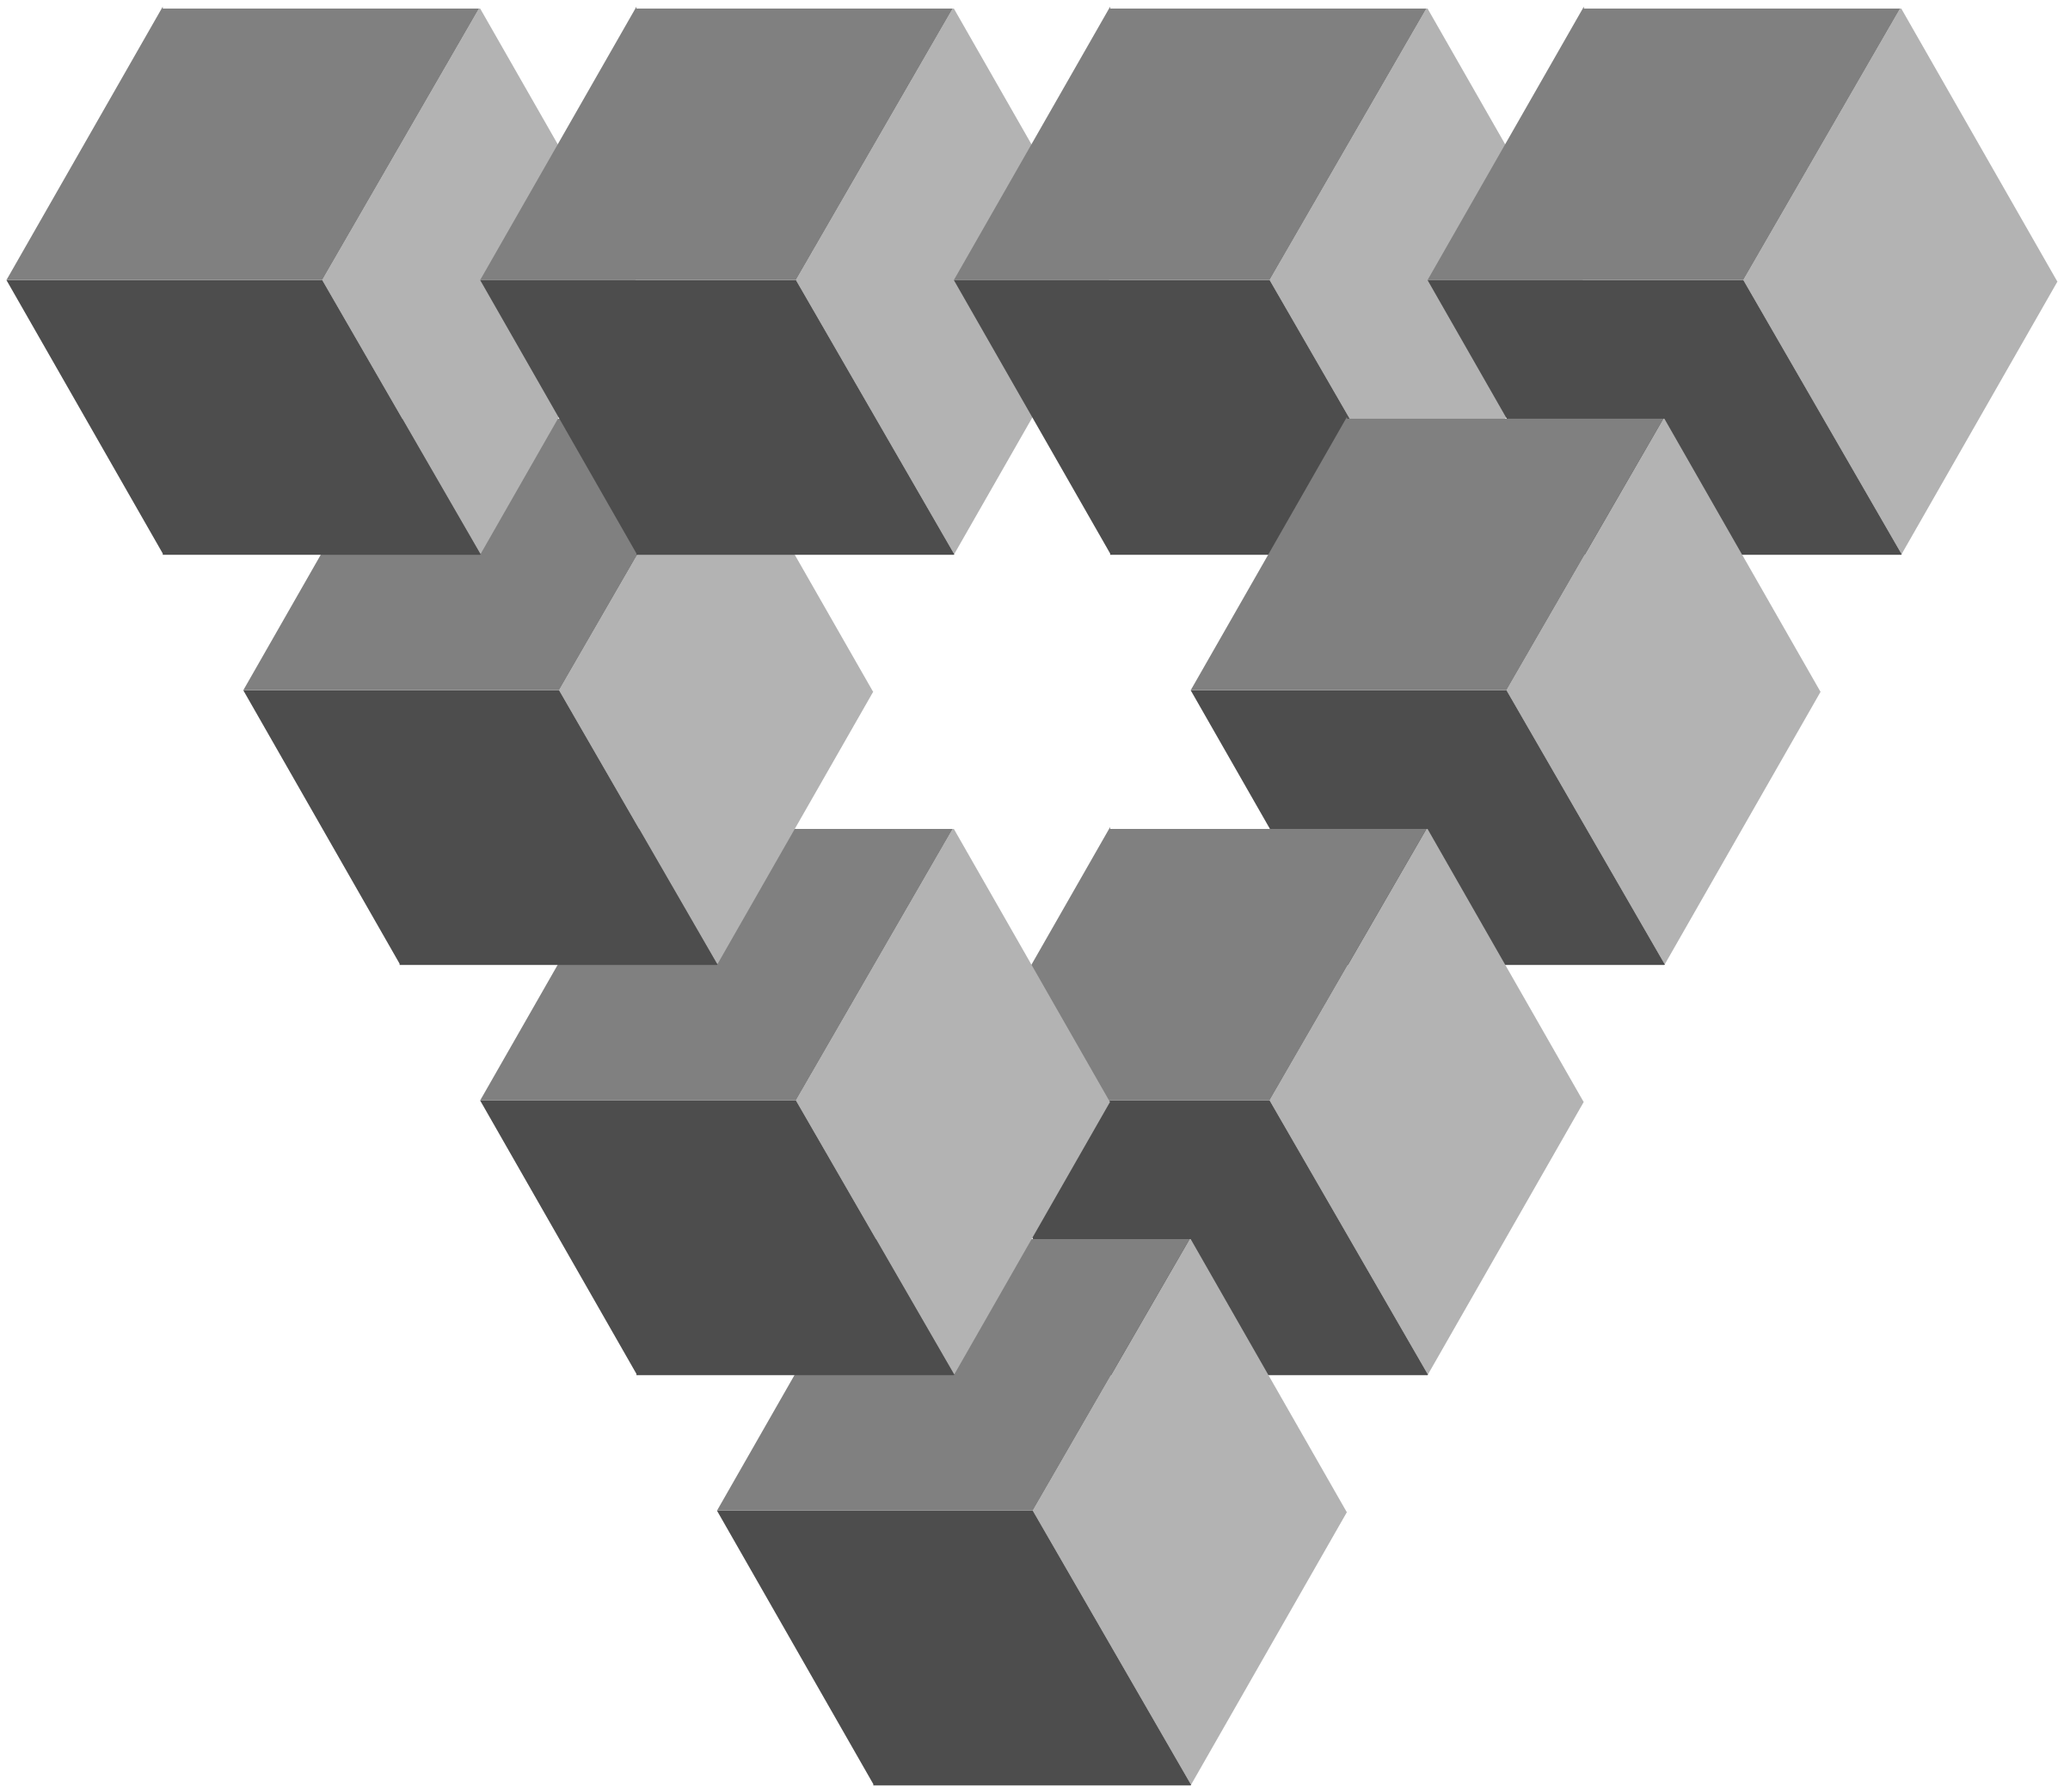 Clipart - Impossible 3D Penrose Triangle